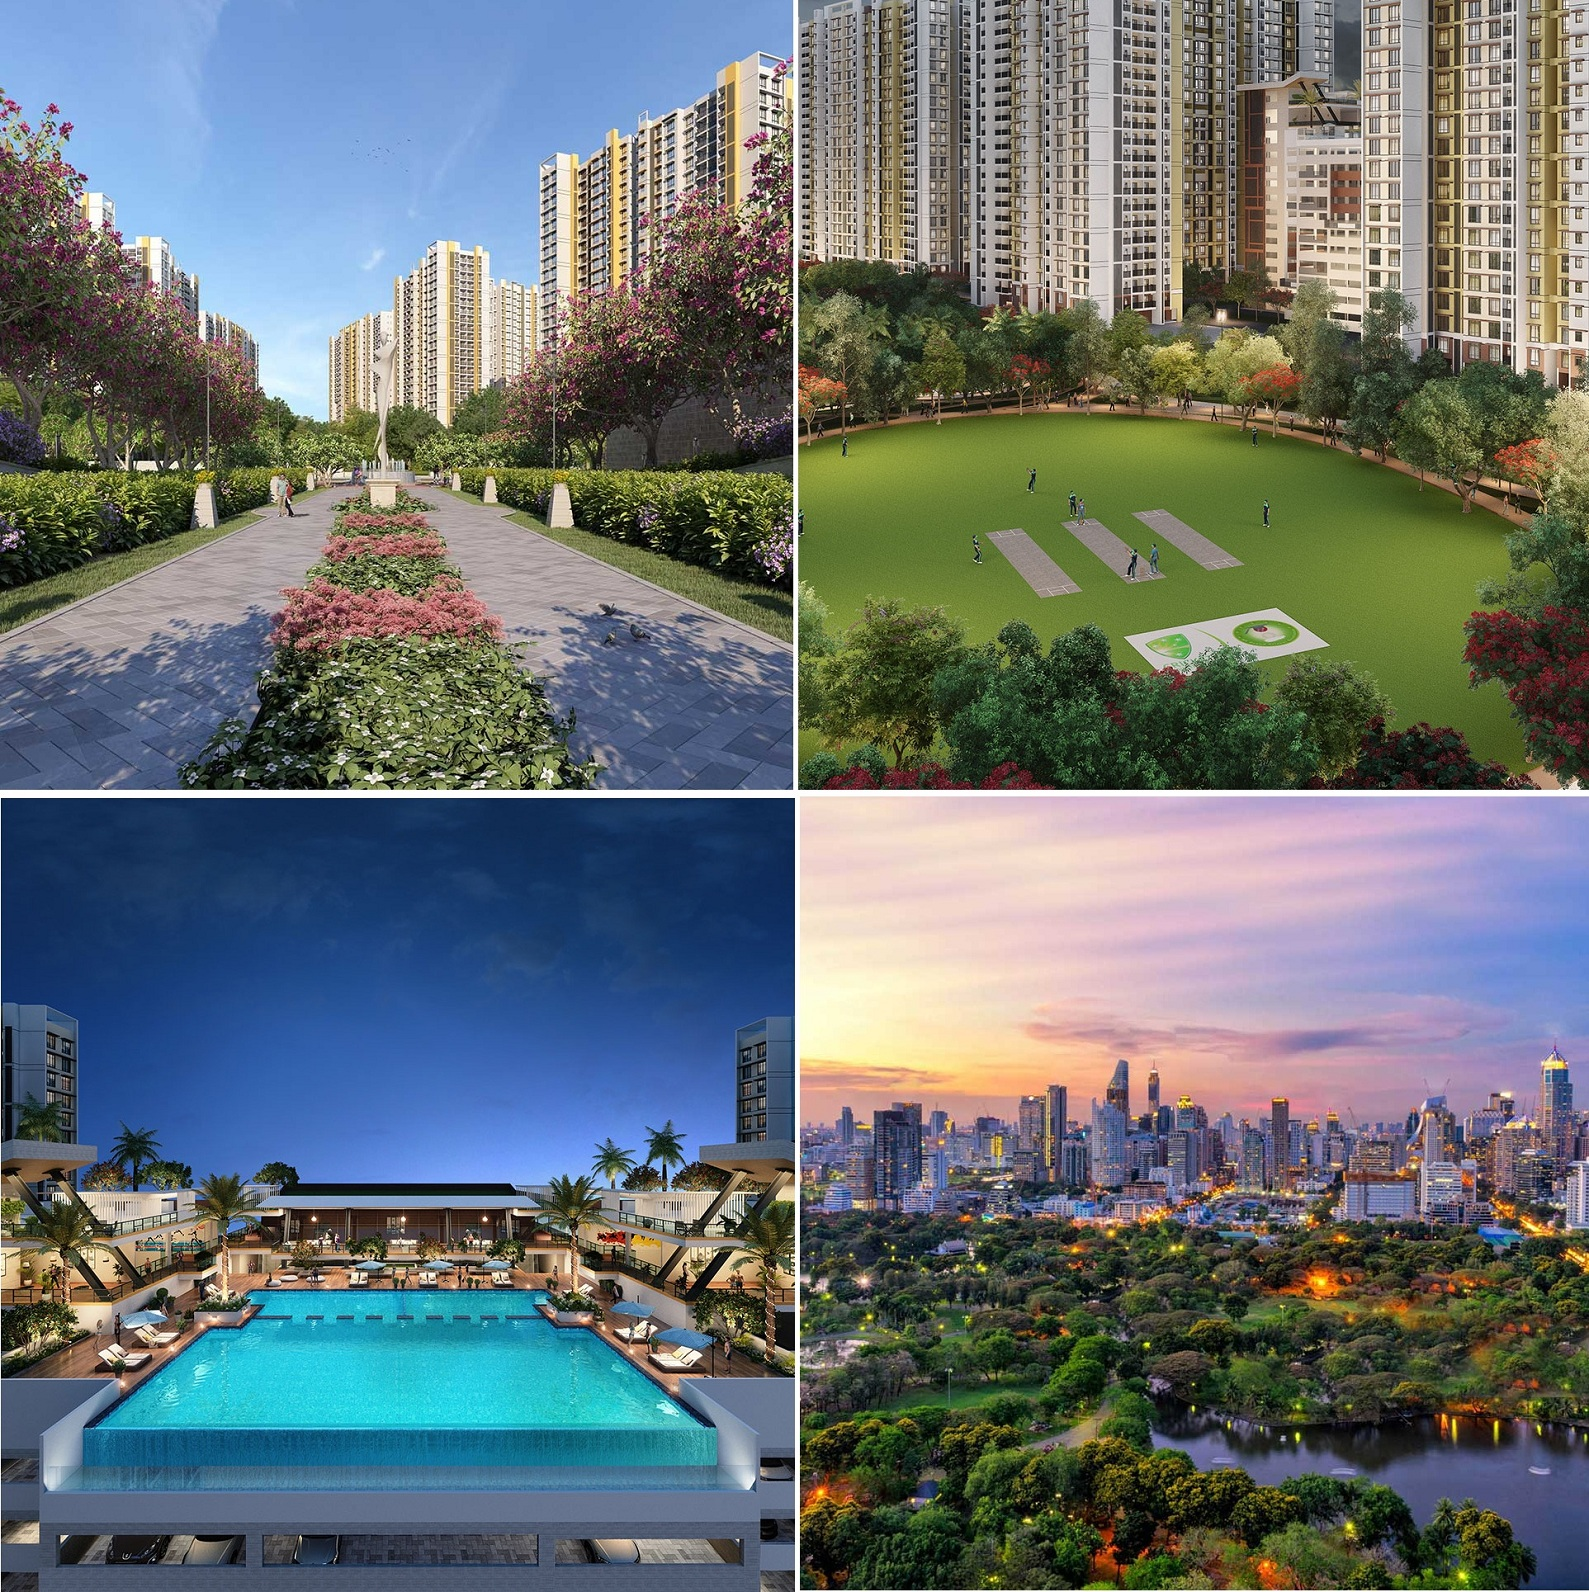 runwal gardens phase 2 project amenities features1